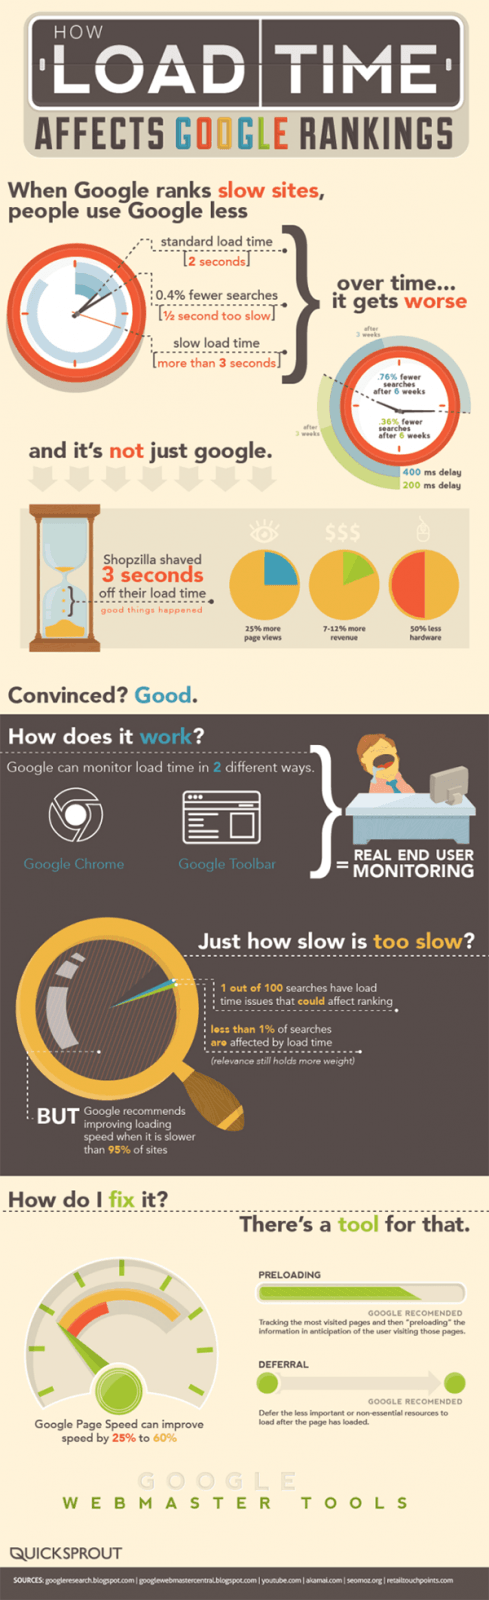 How Load Time Affects Google Rankings [Infographic]